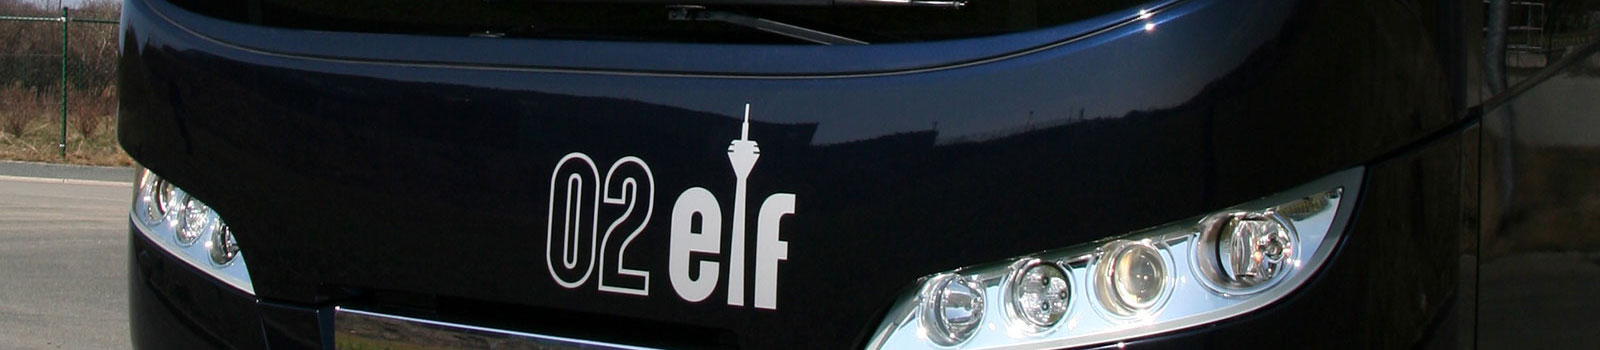 02elf Travel GmbH & Co KG - Maxi-Klasse